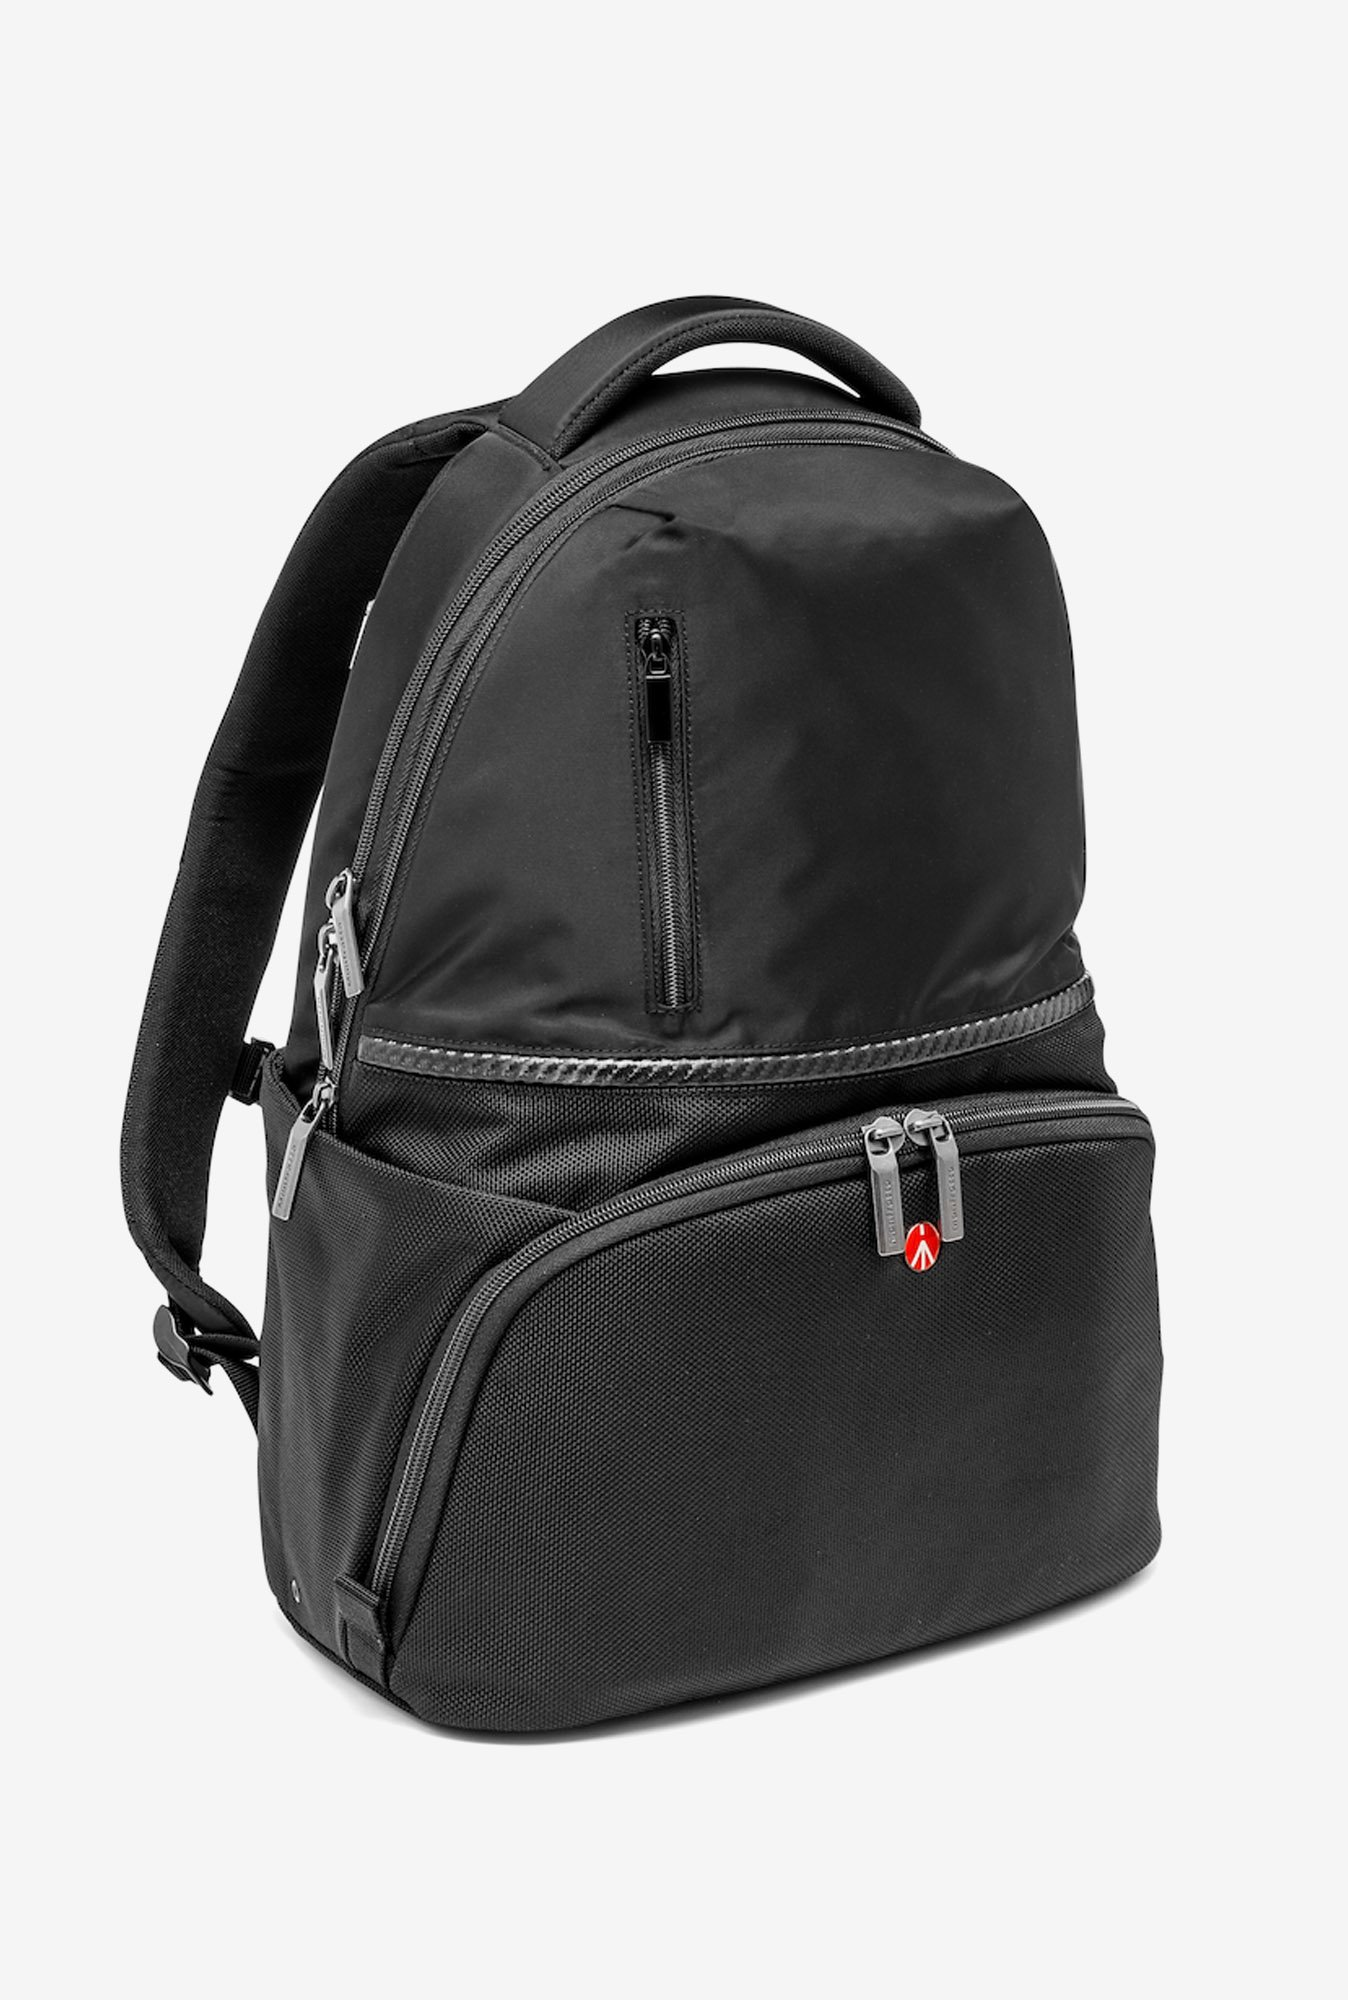 Manfrotto MB MA-BP-A1 Camera Backpack Black